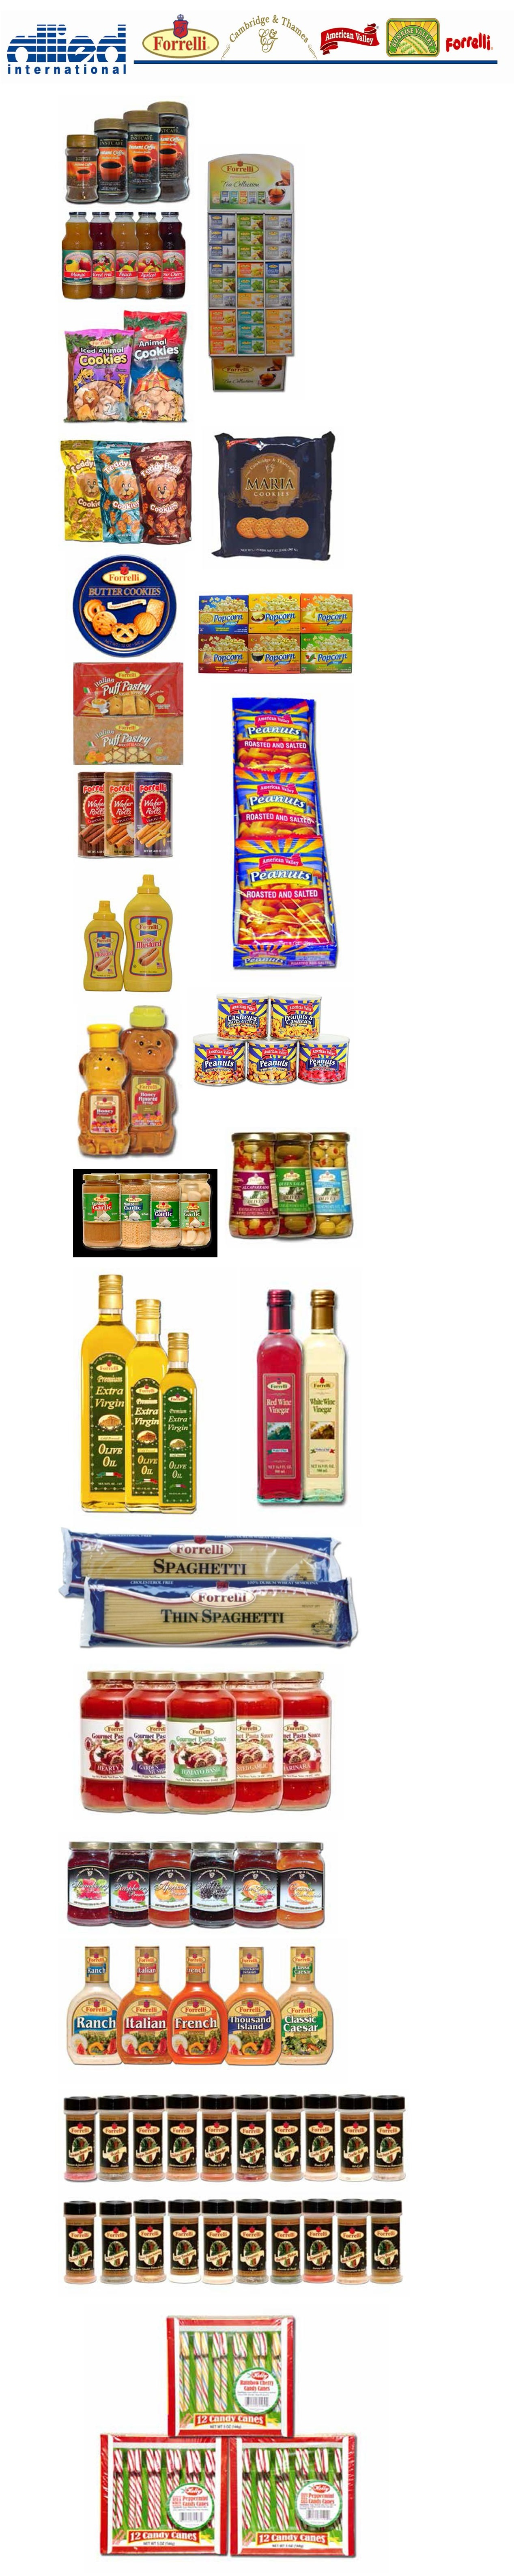 Allied foods image